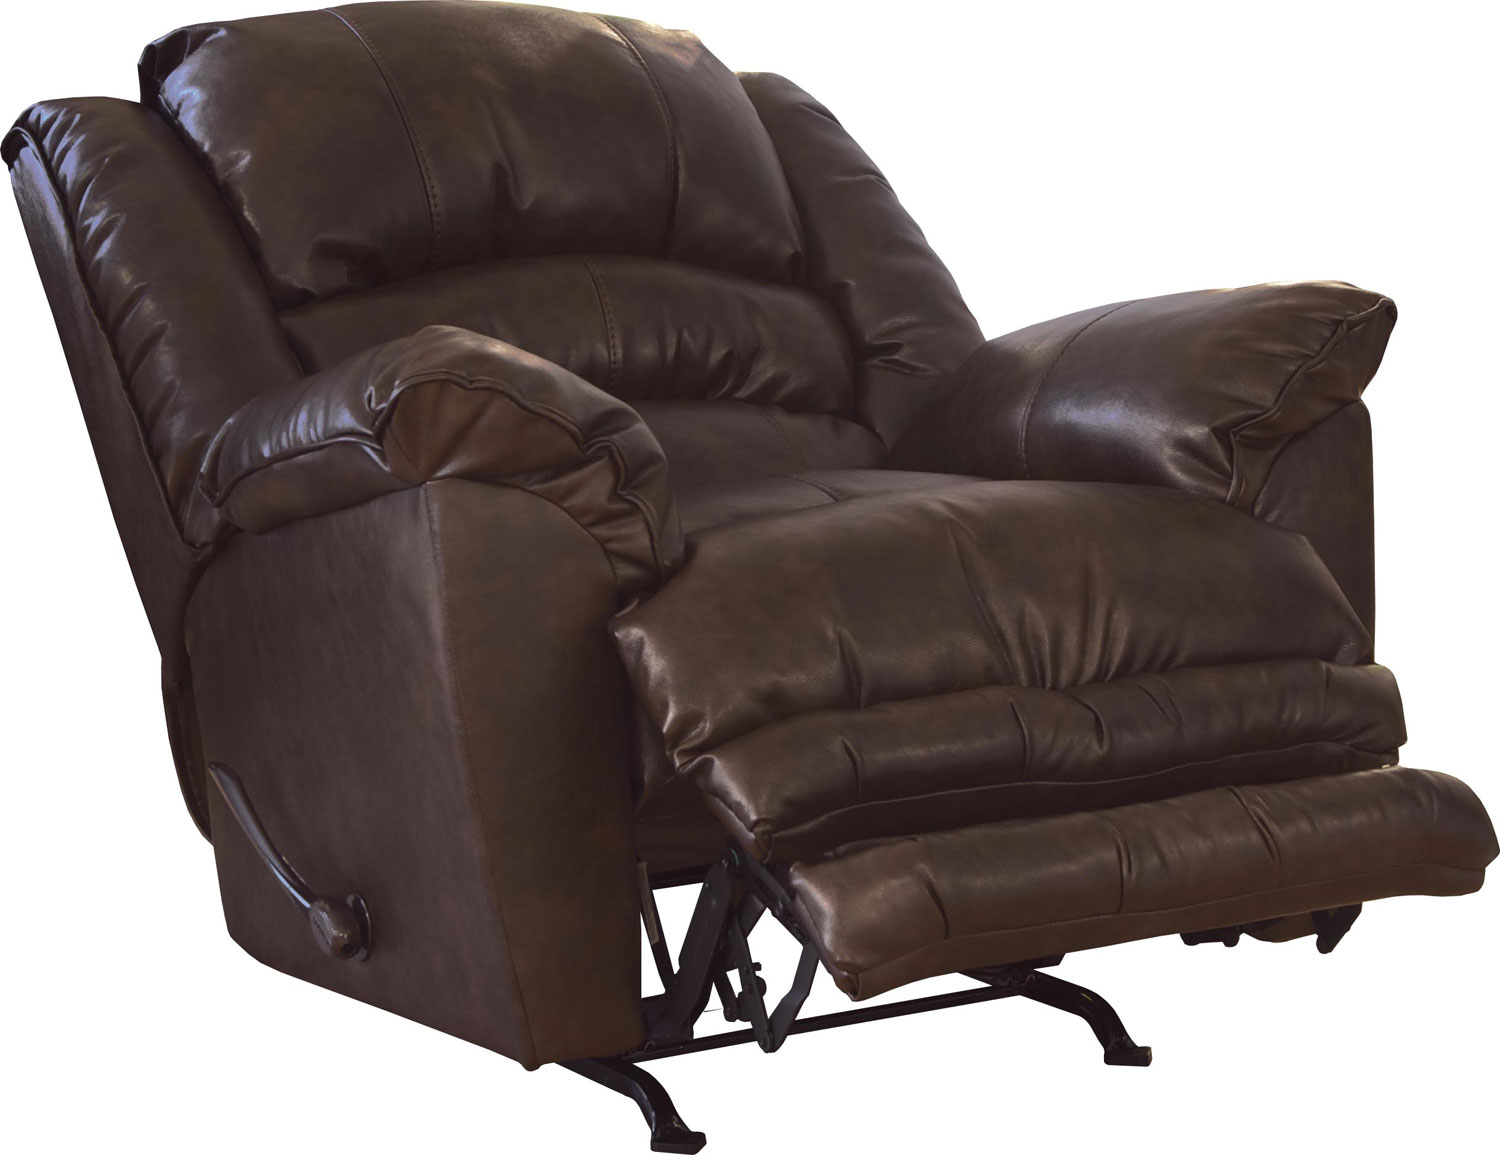 catnapper filmore chaise rocker recliner oversized x tra